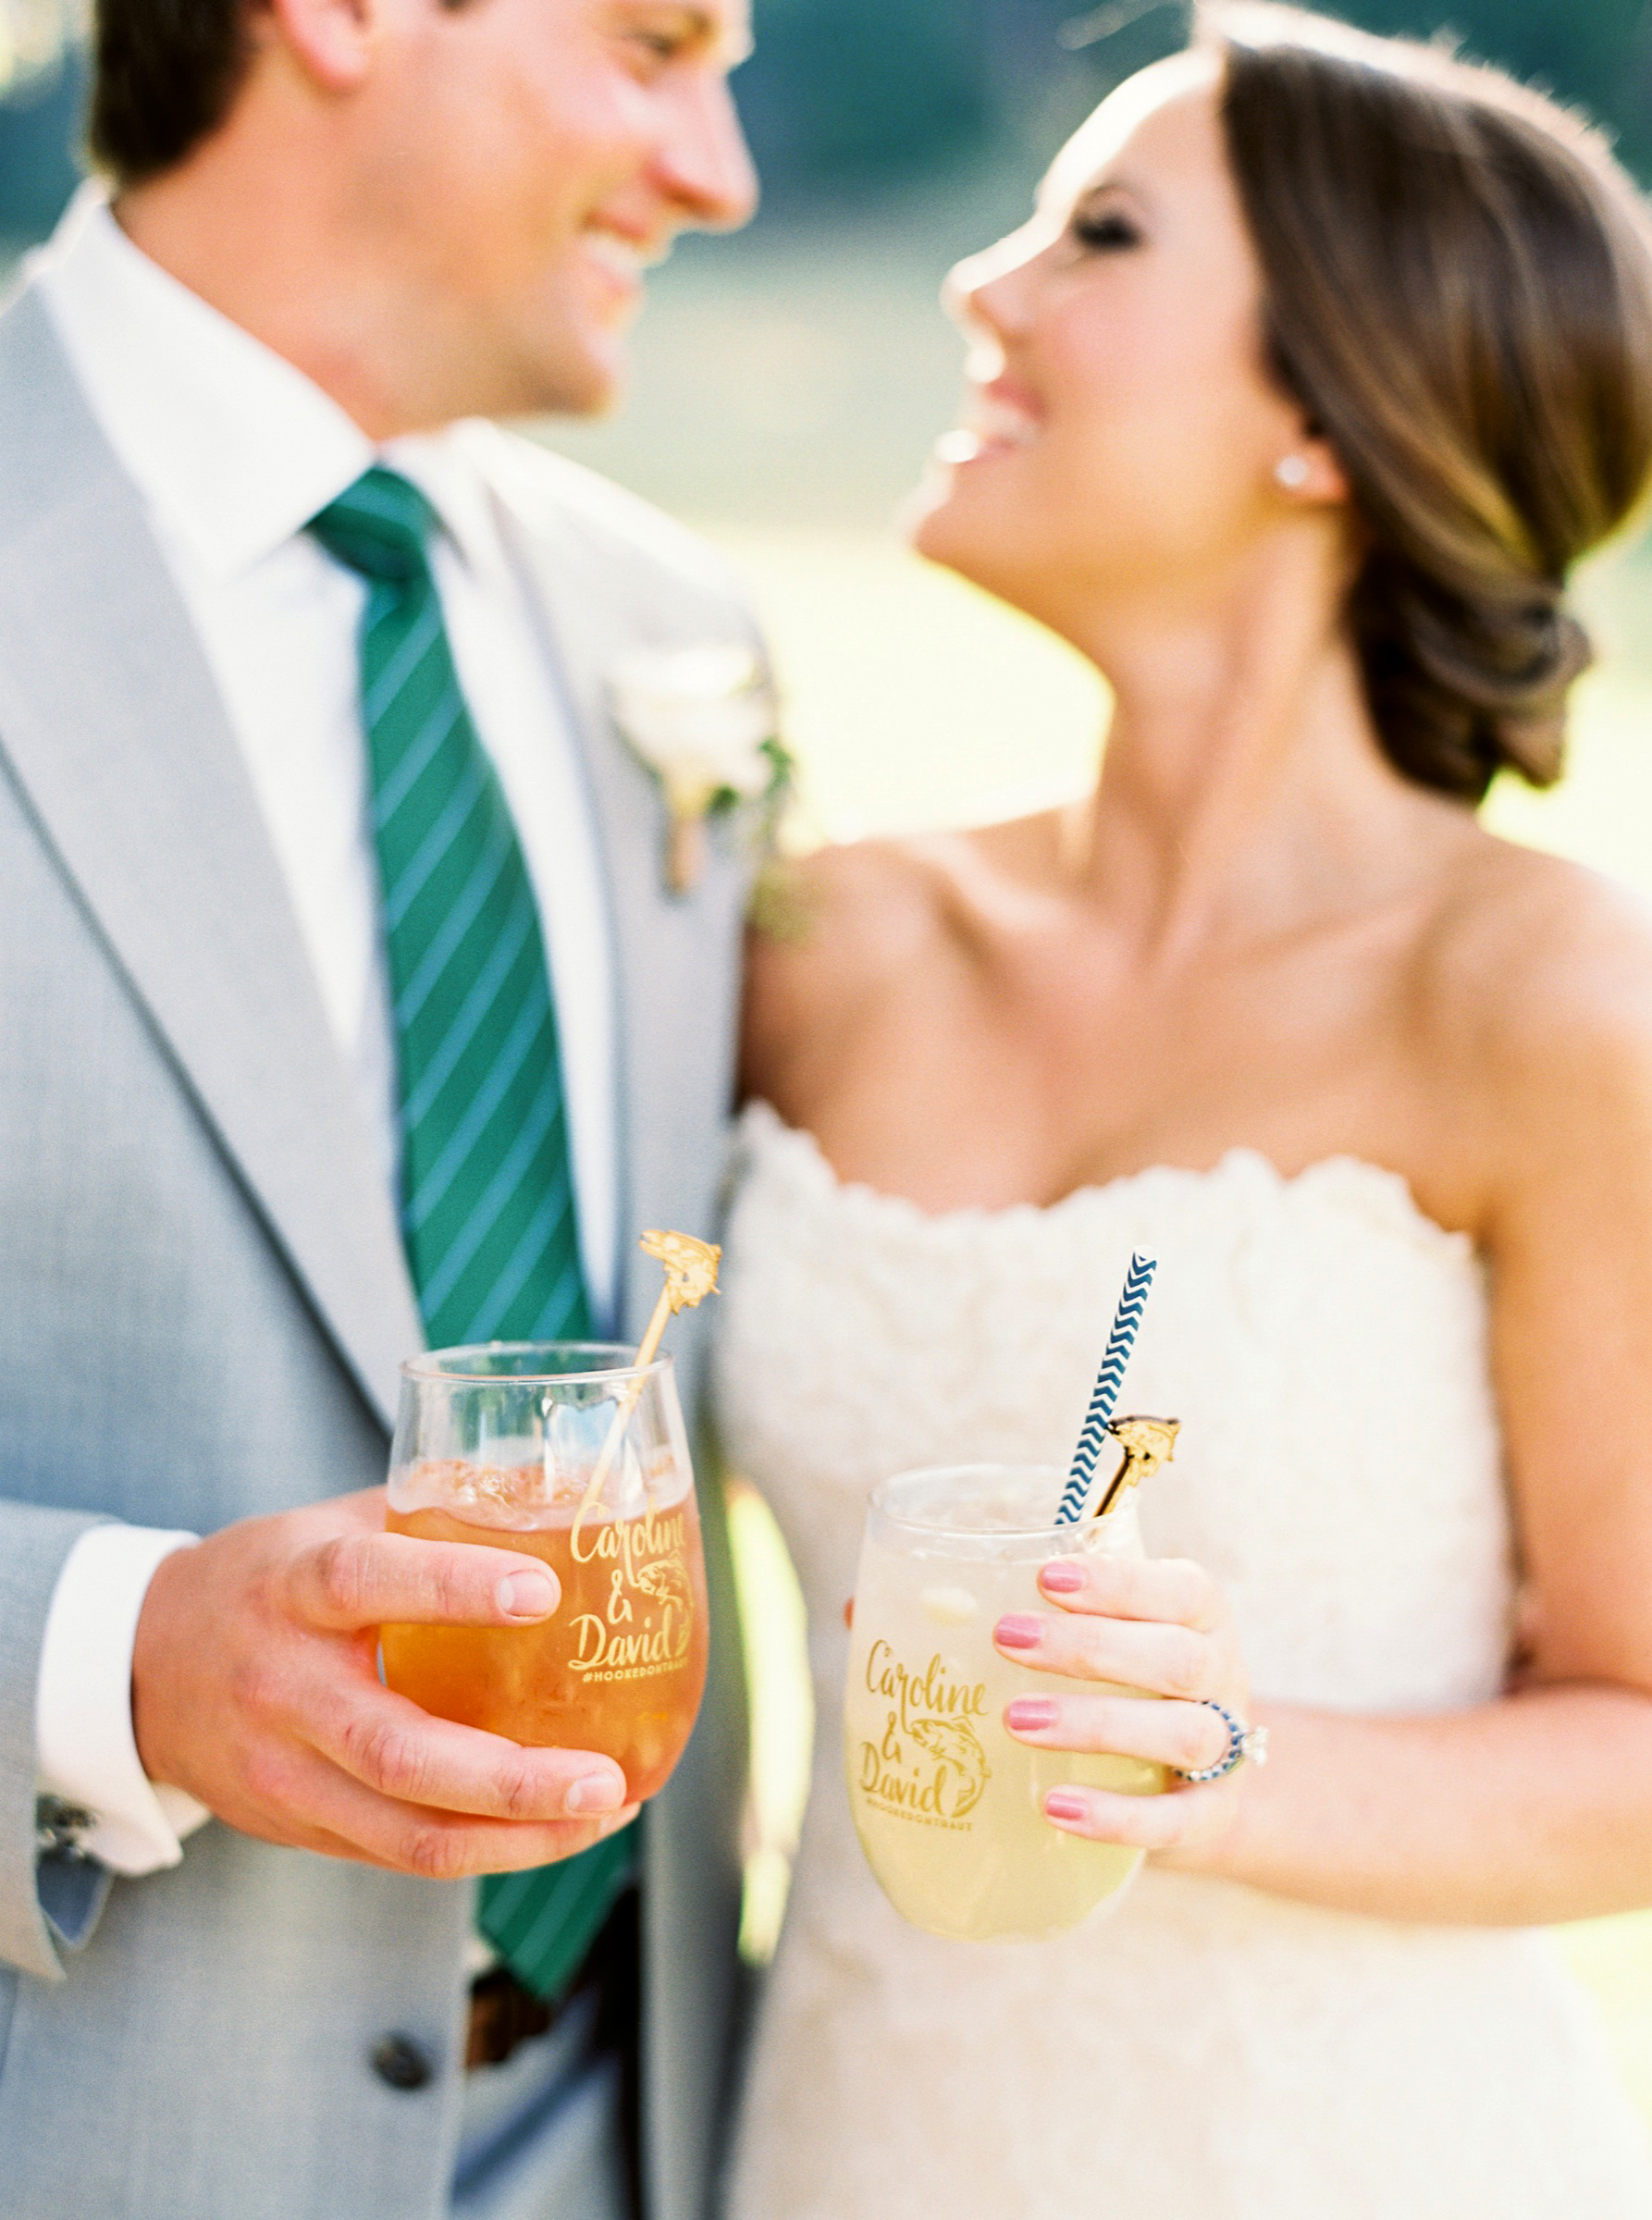 his and hers drinks cocktails perry vaile bride groom wedding smiles